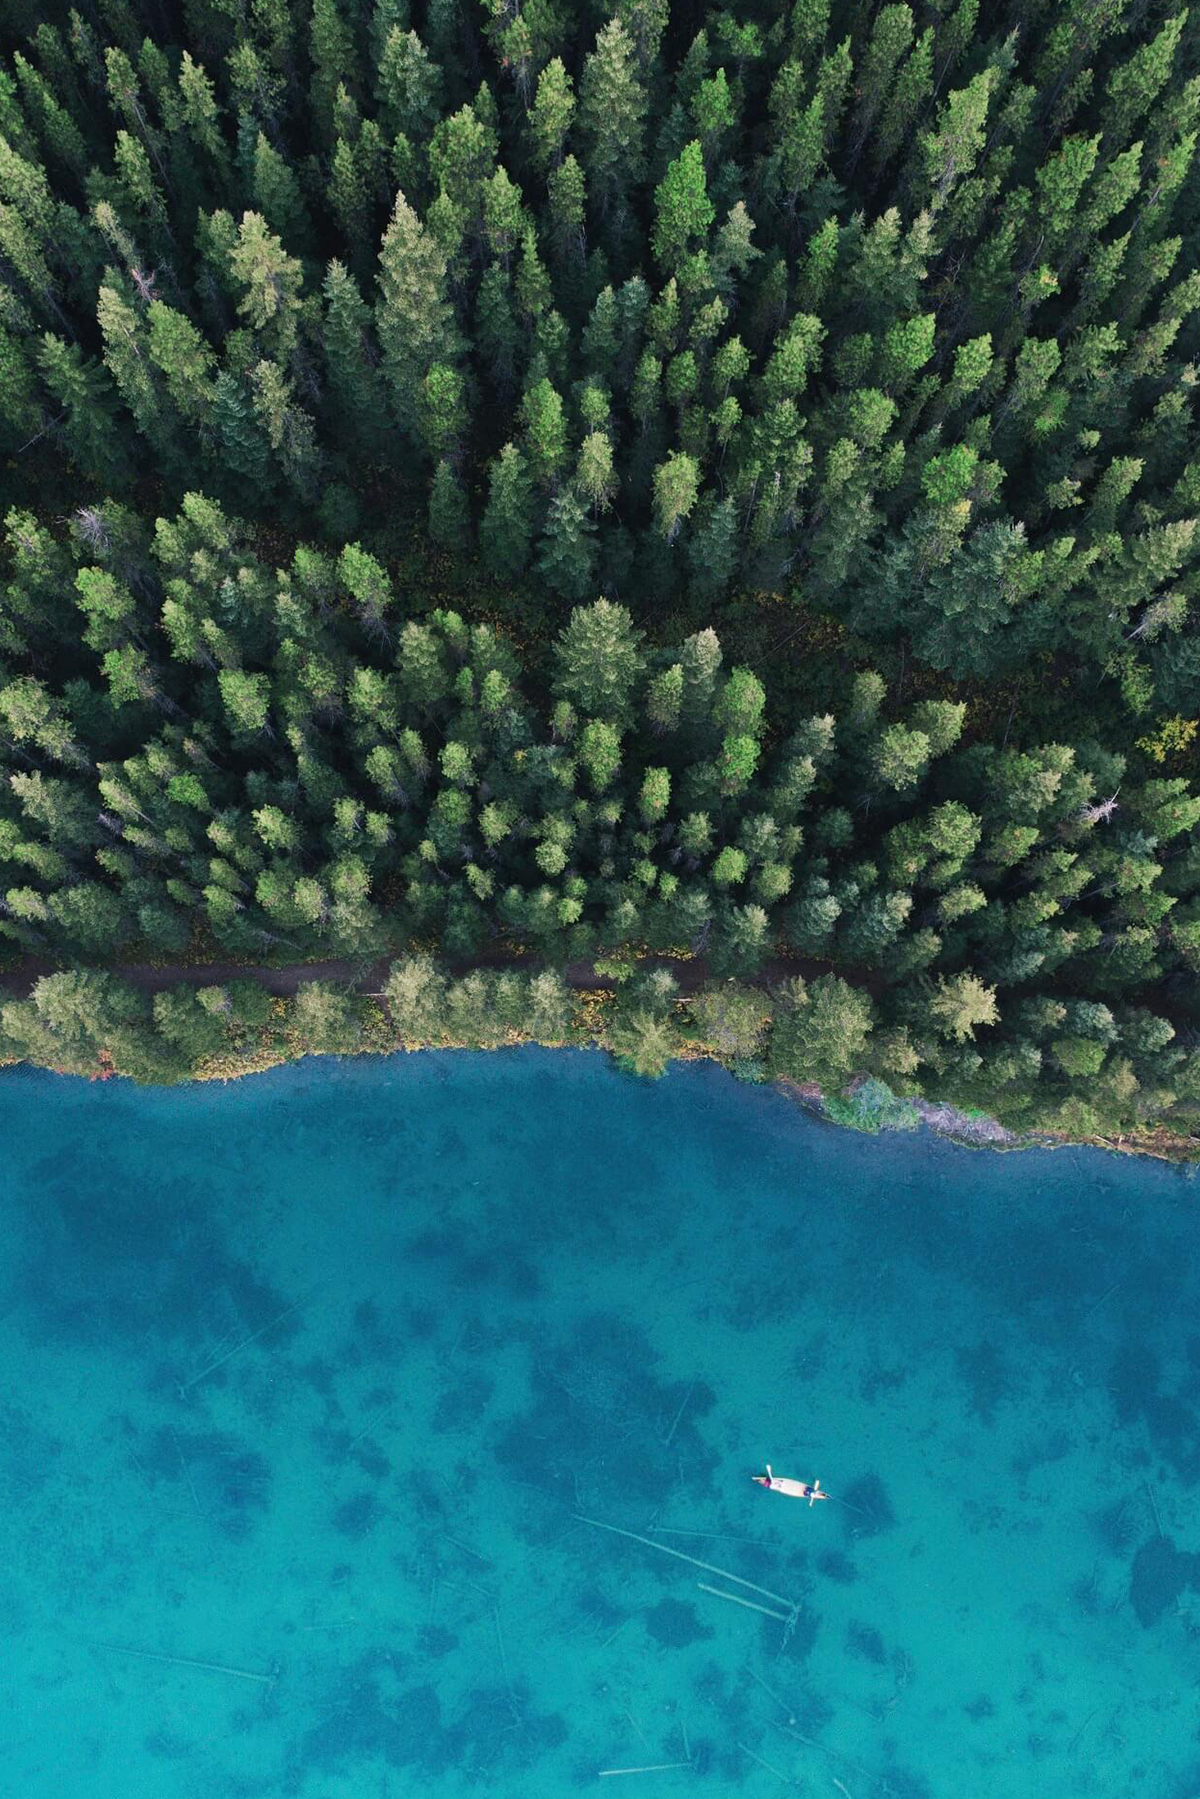 Drone photo by Dirk Dallas of water and trees